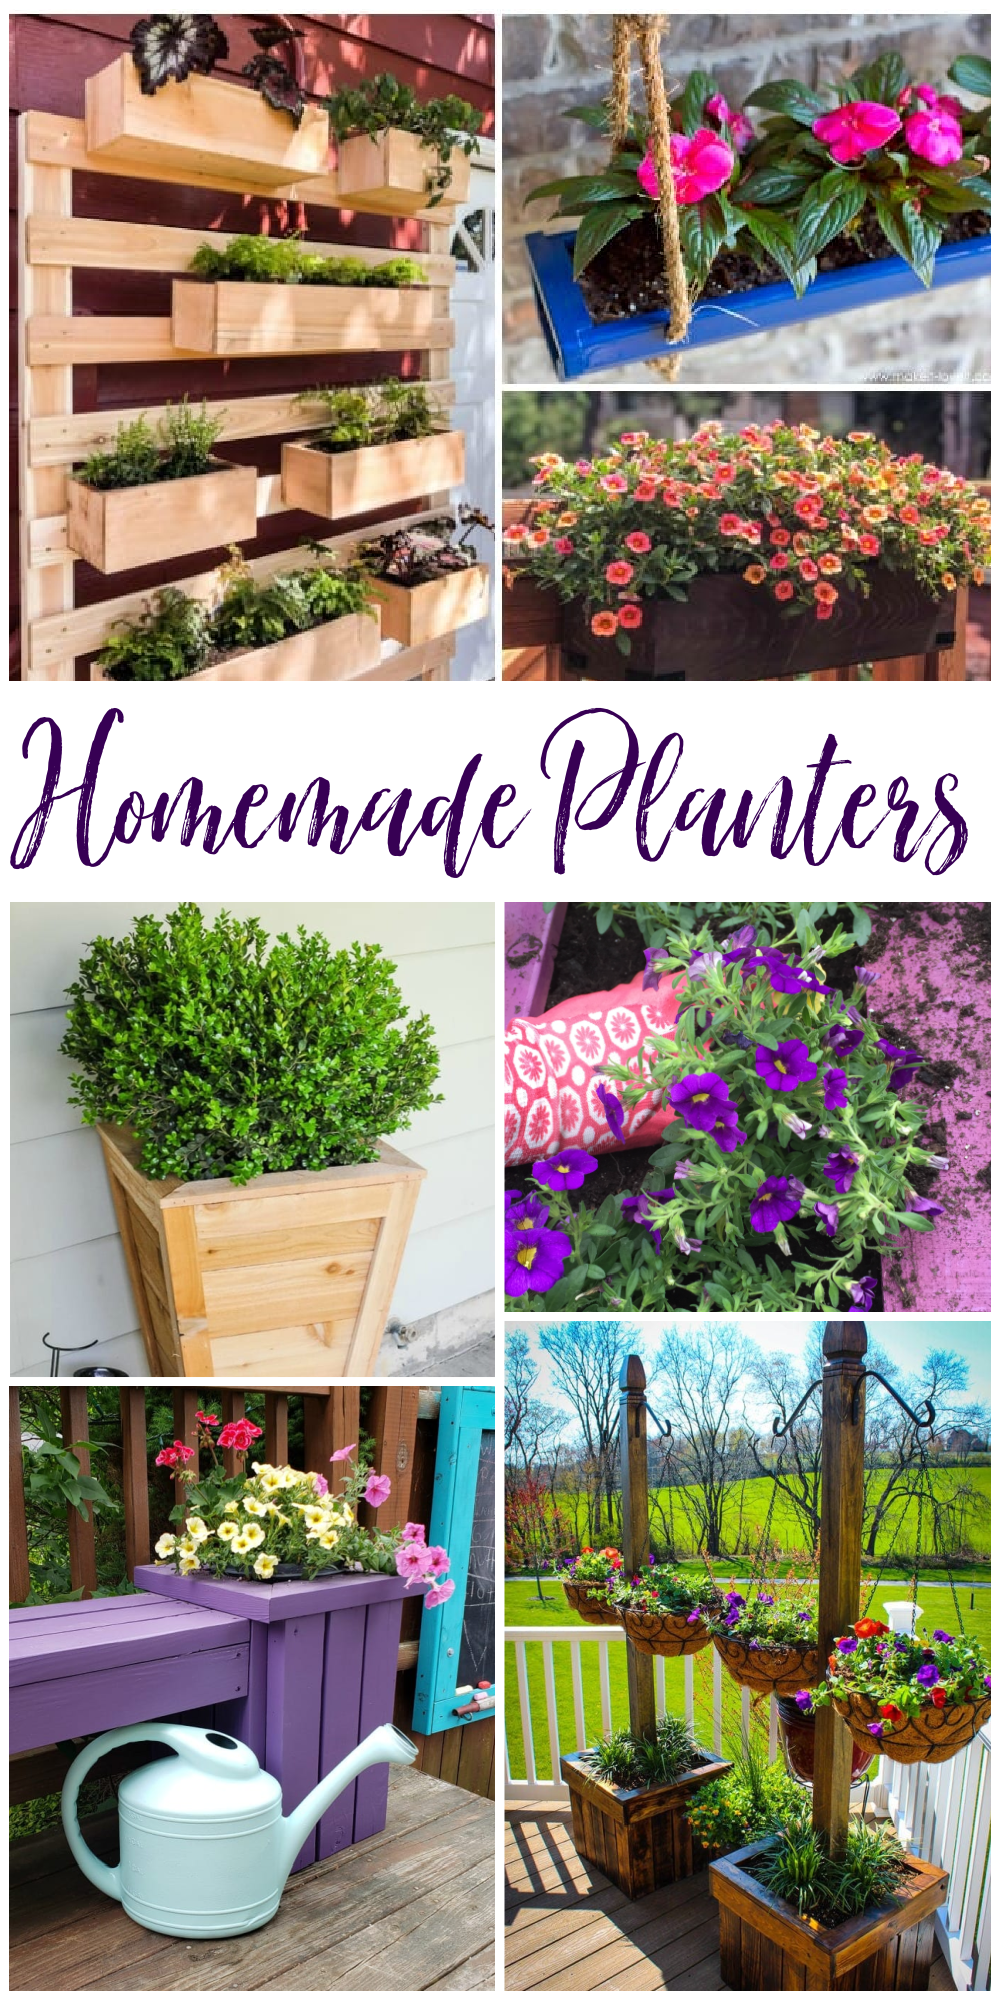 Add simple DIY Garden Containers to your garden or porch with these simple ideas. via @jugglingactmama